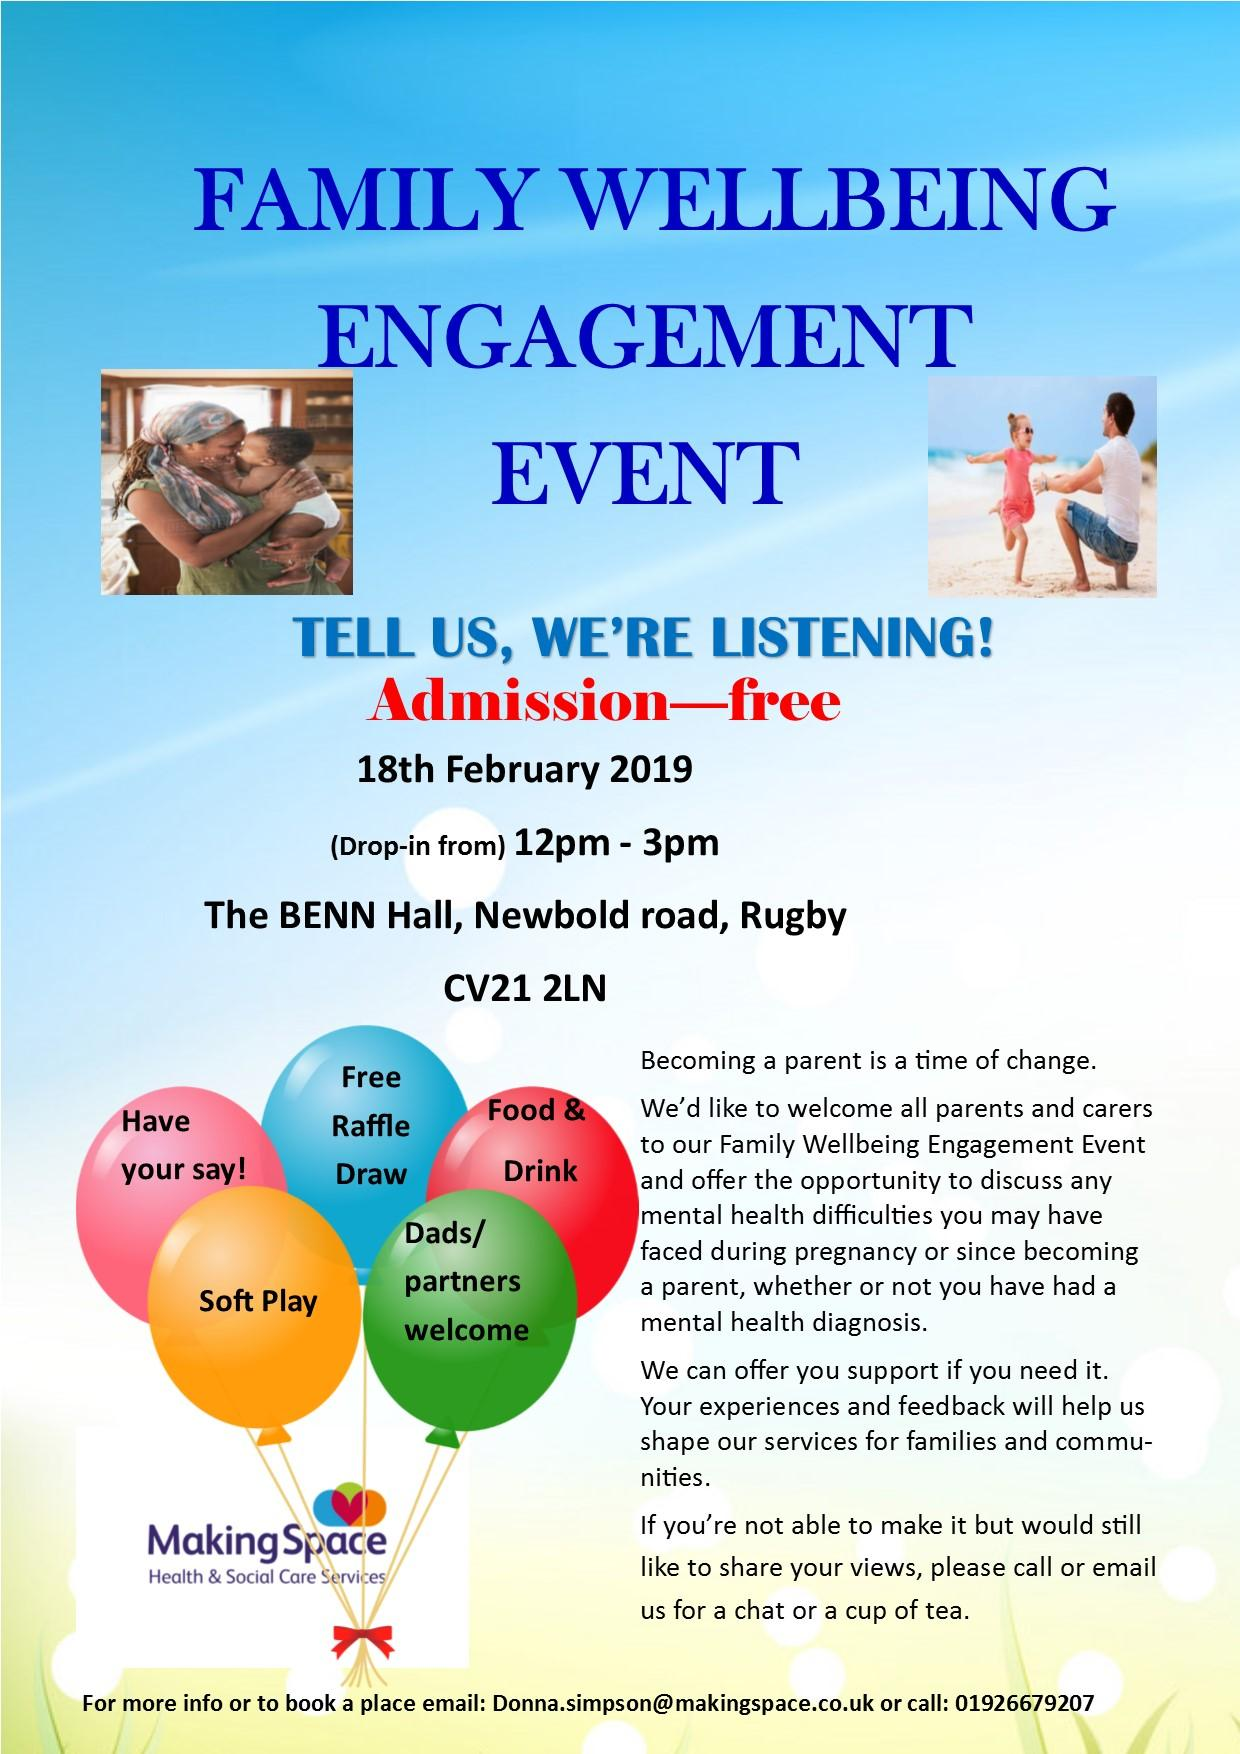 Family Wellbeing Events in Rugby